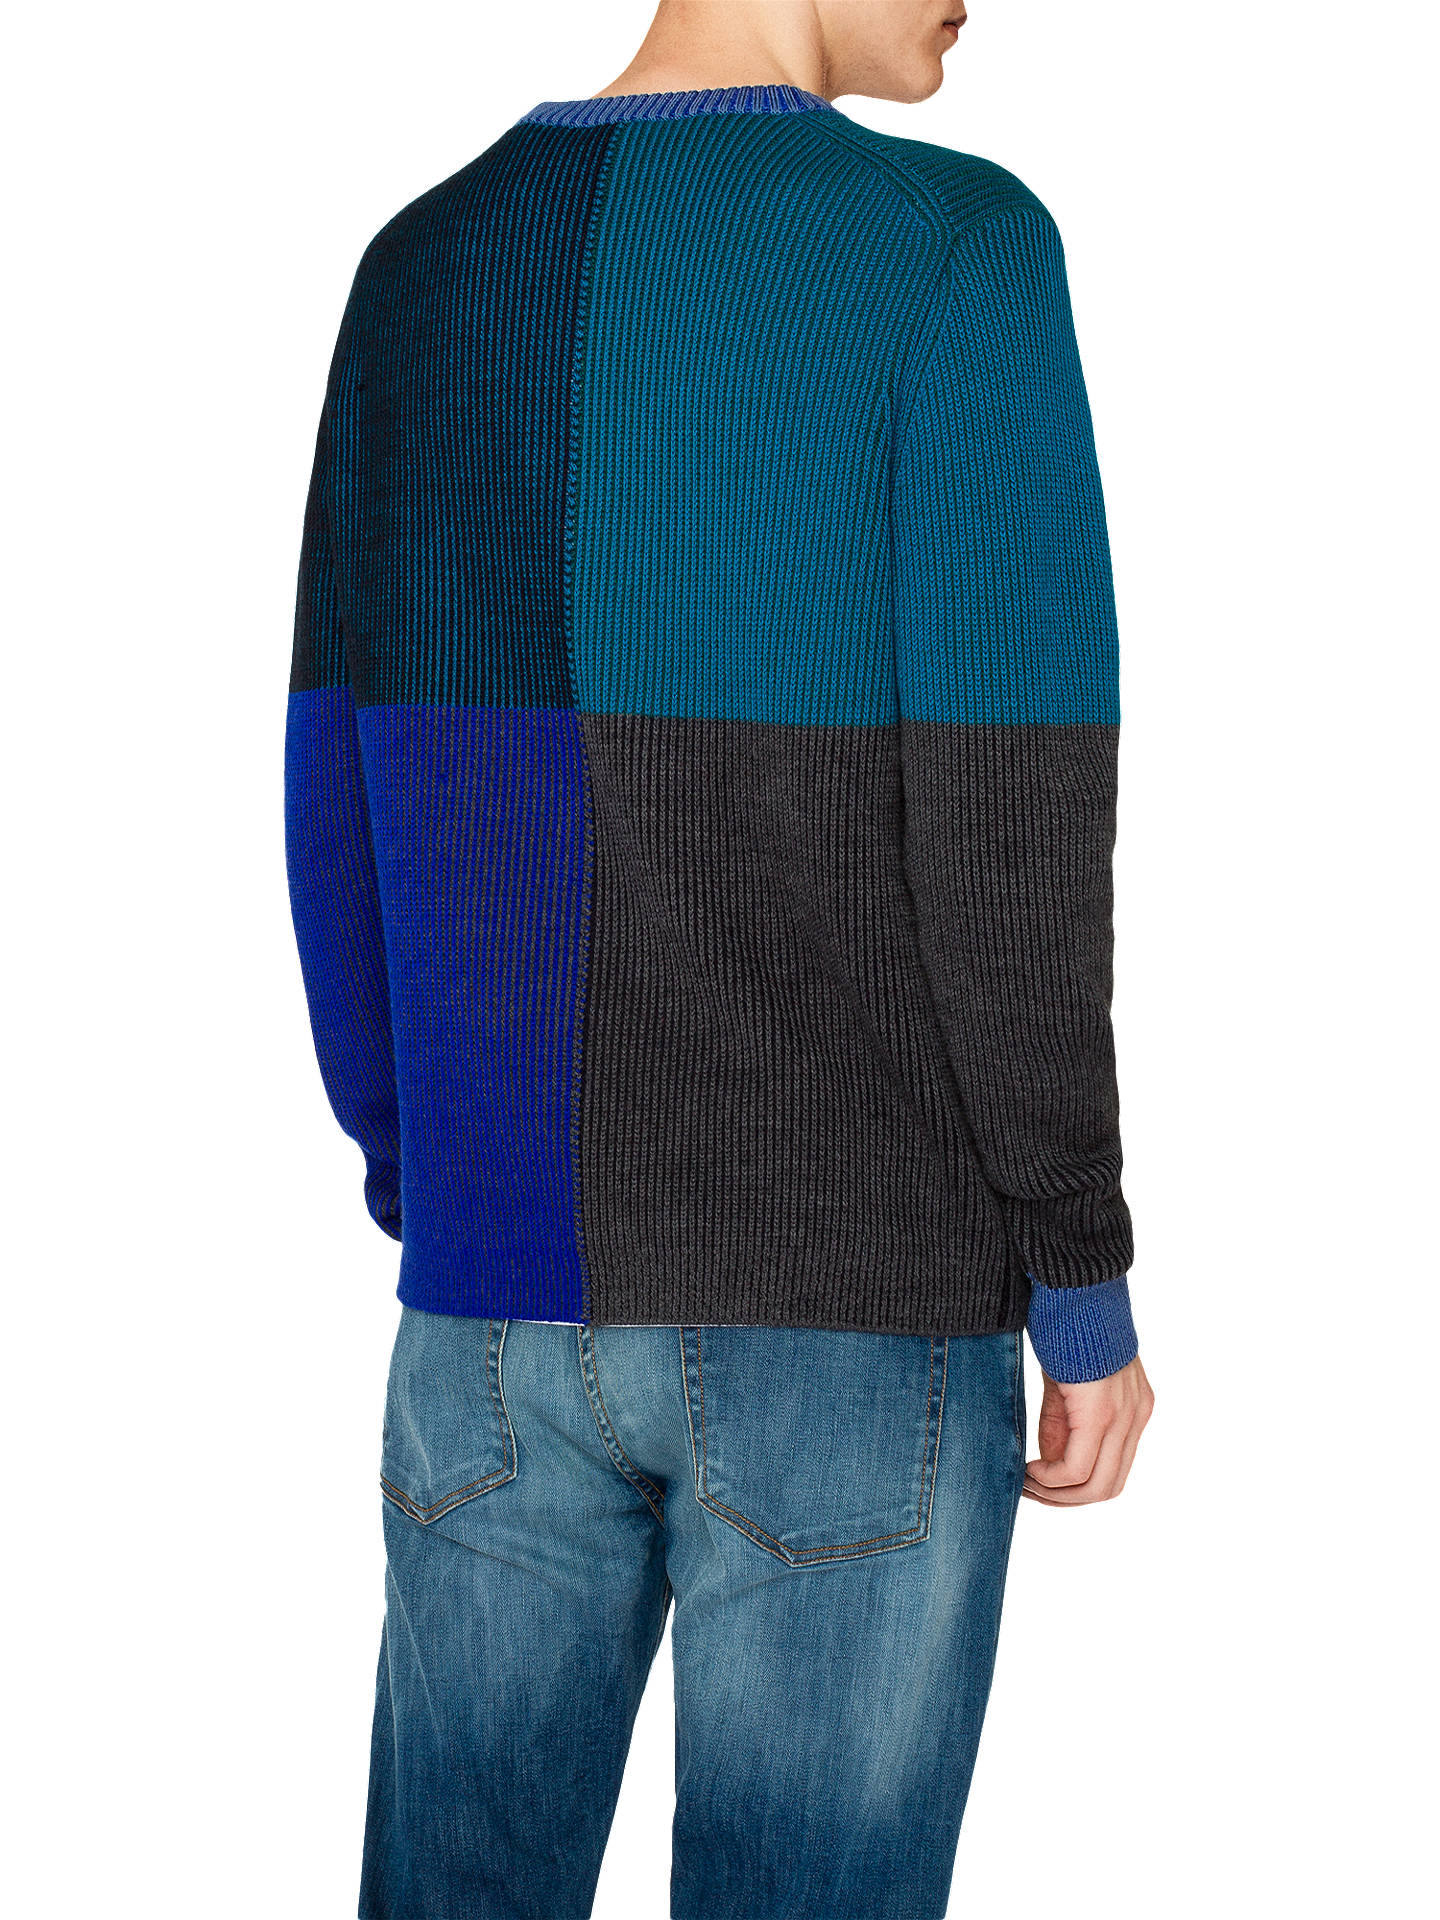 Buy PS Paul Smith Rib Merino Pullover Jumper, Blue/Multi, L Online at johnlewis.com